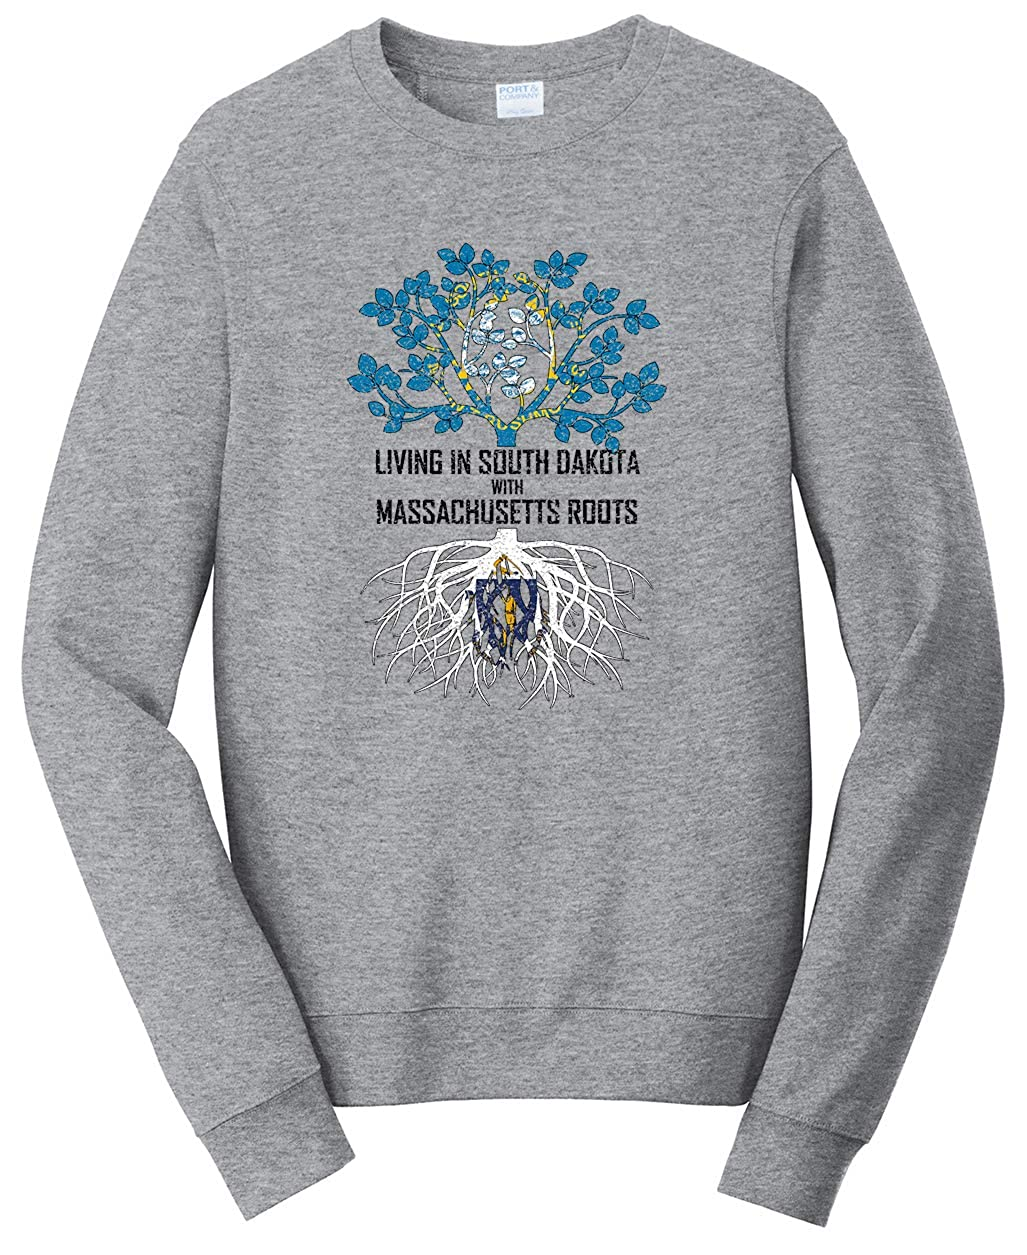 Tenacitee Unisex Living in South Dakota Massachusetts Roots Sweatshirt